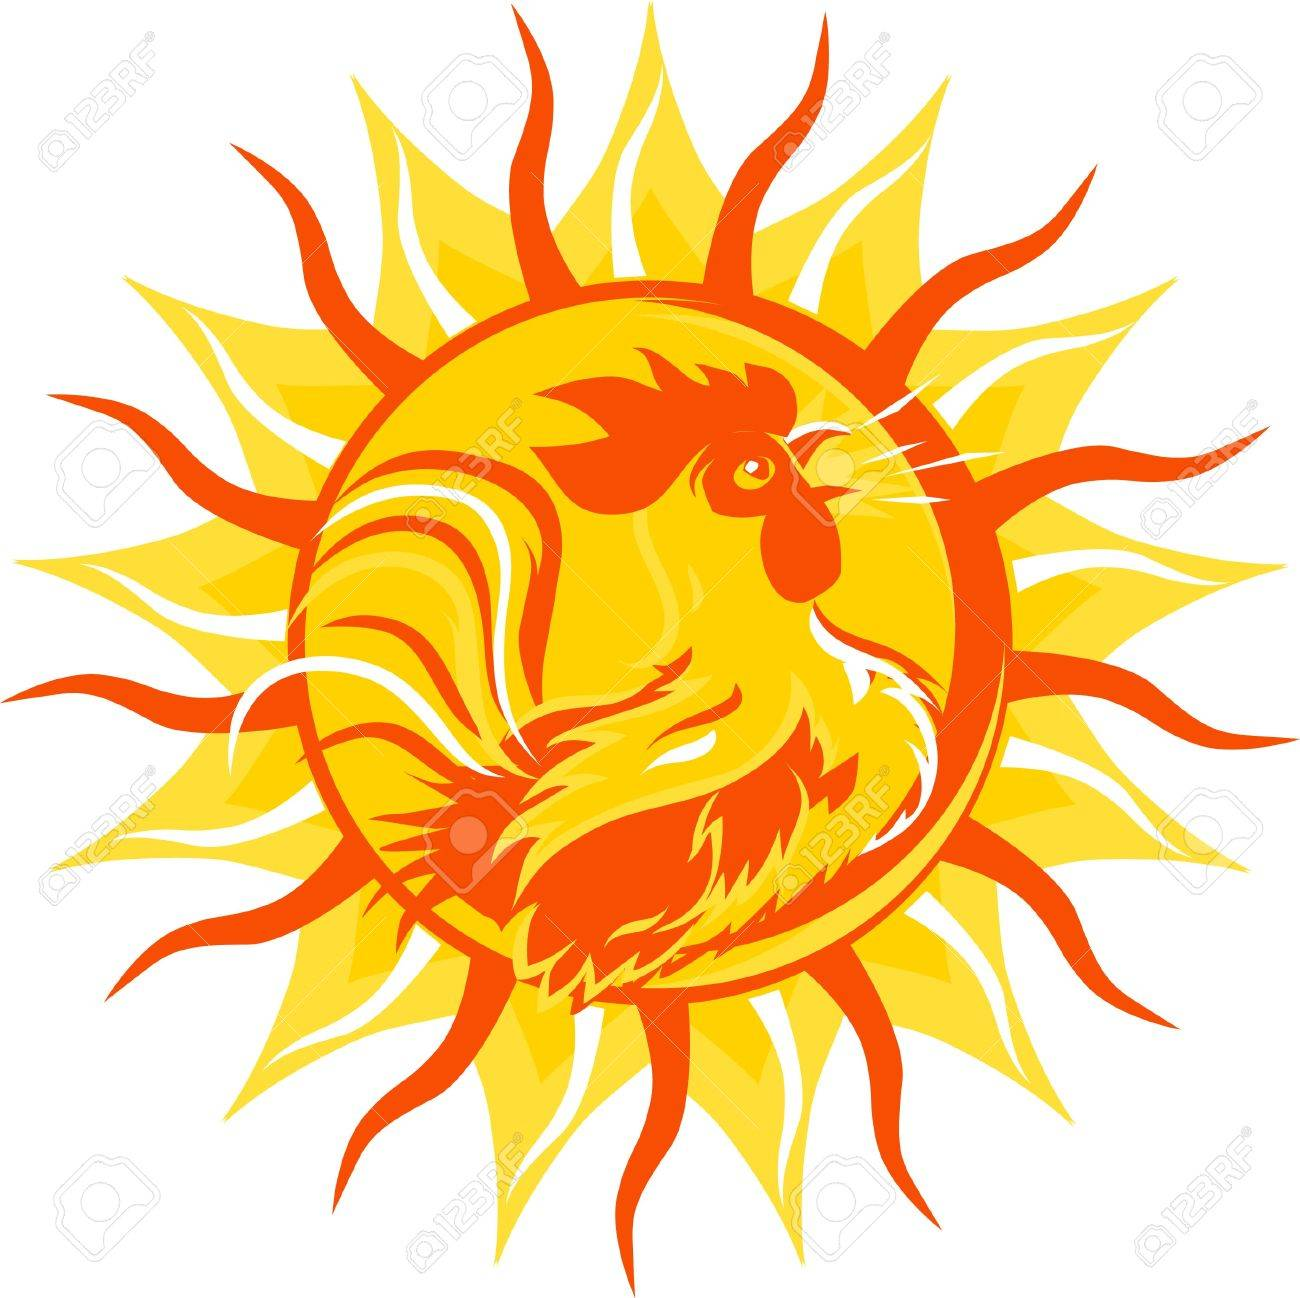 Rooster Sunrise Stock Vector - 12891042